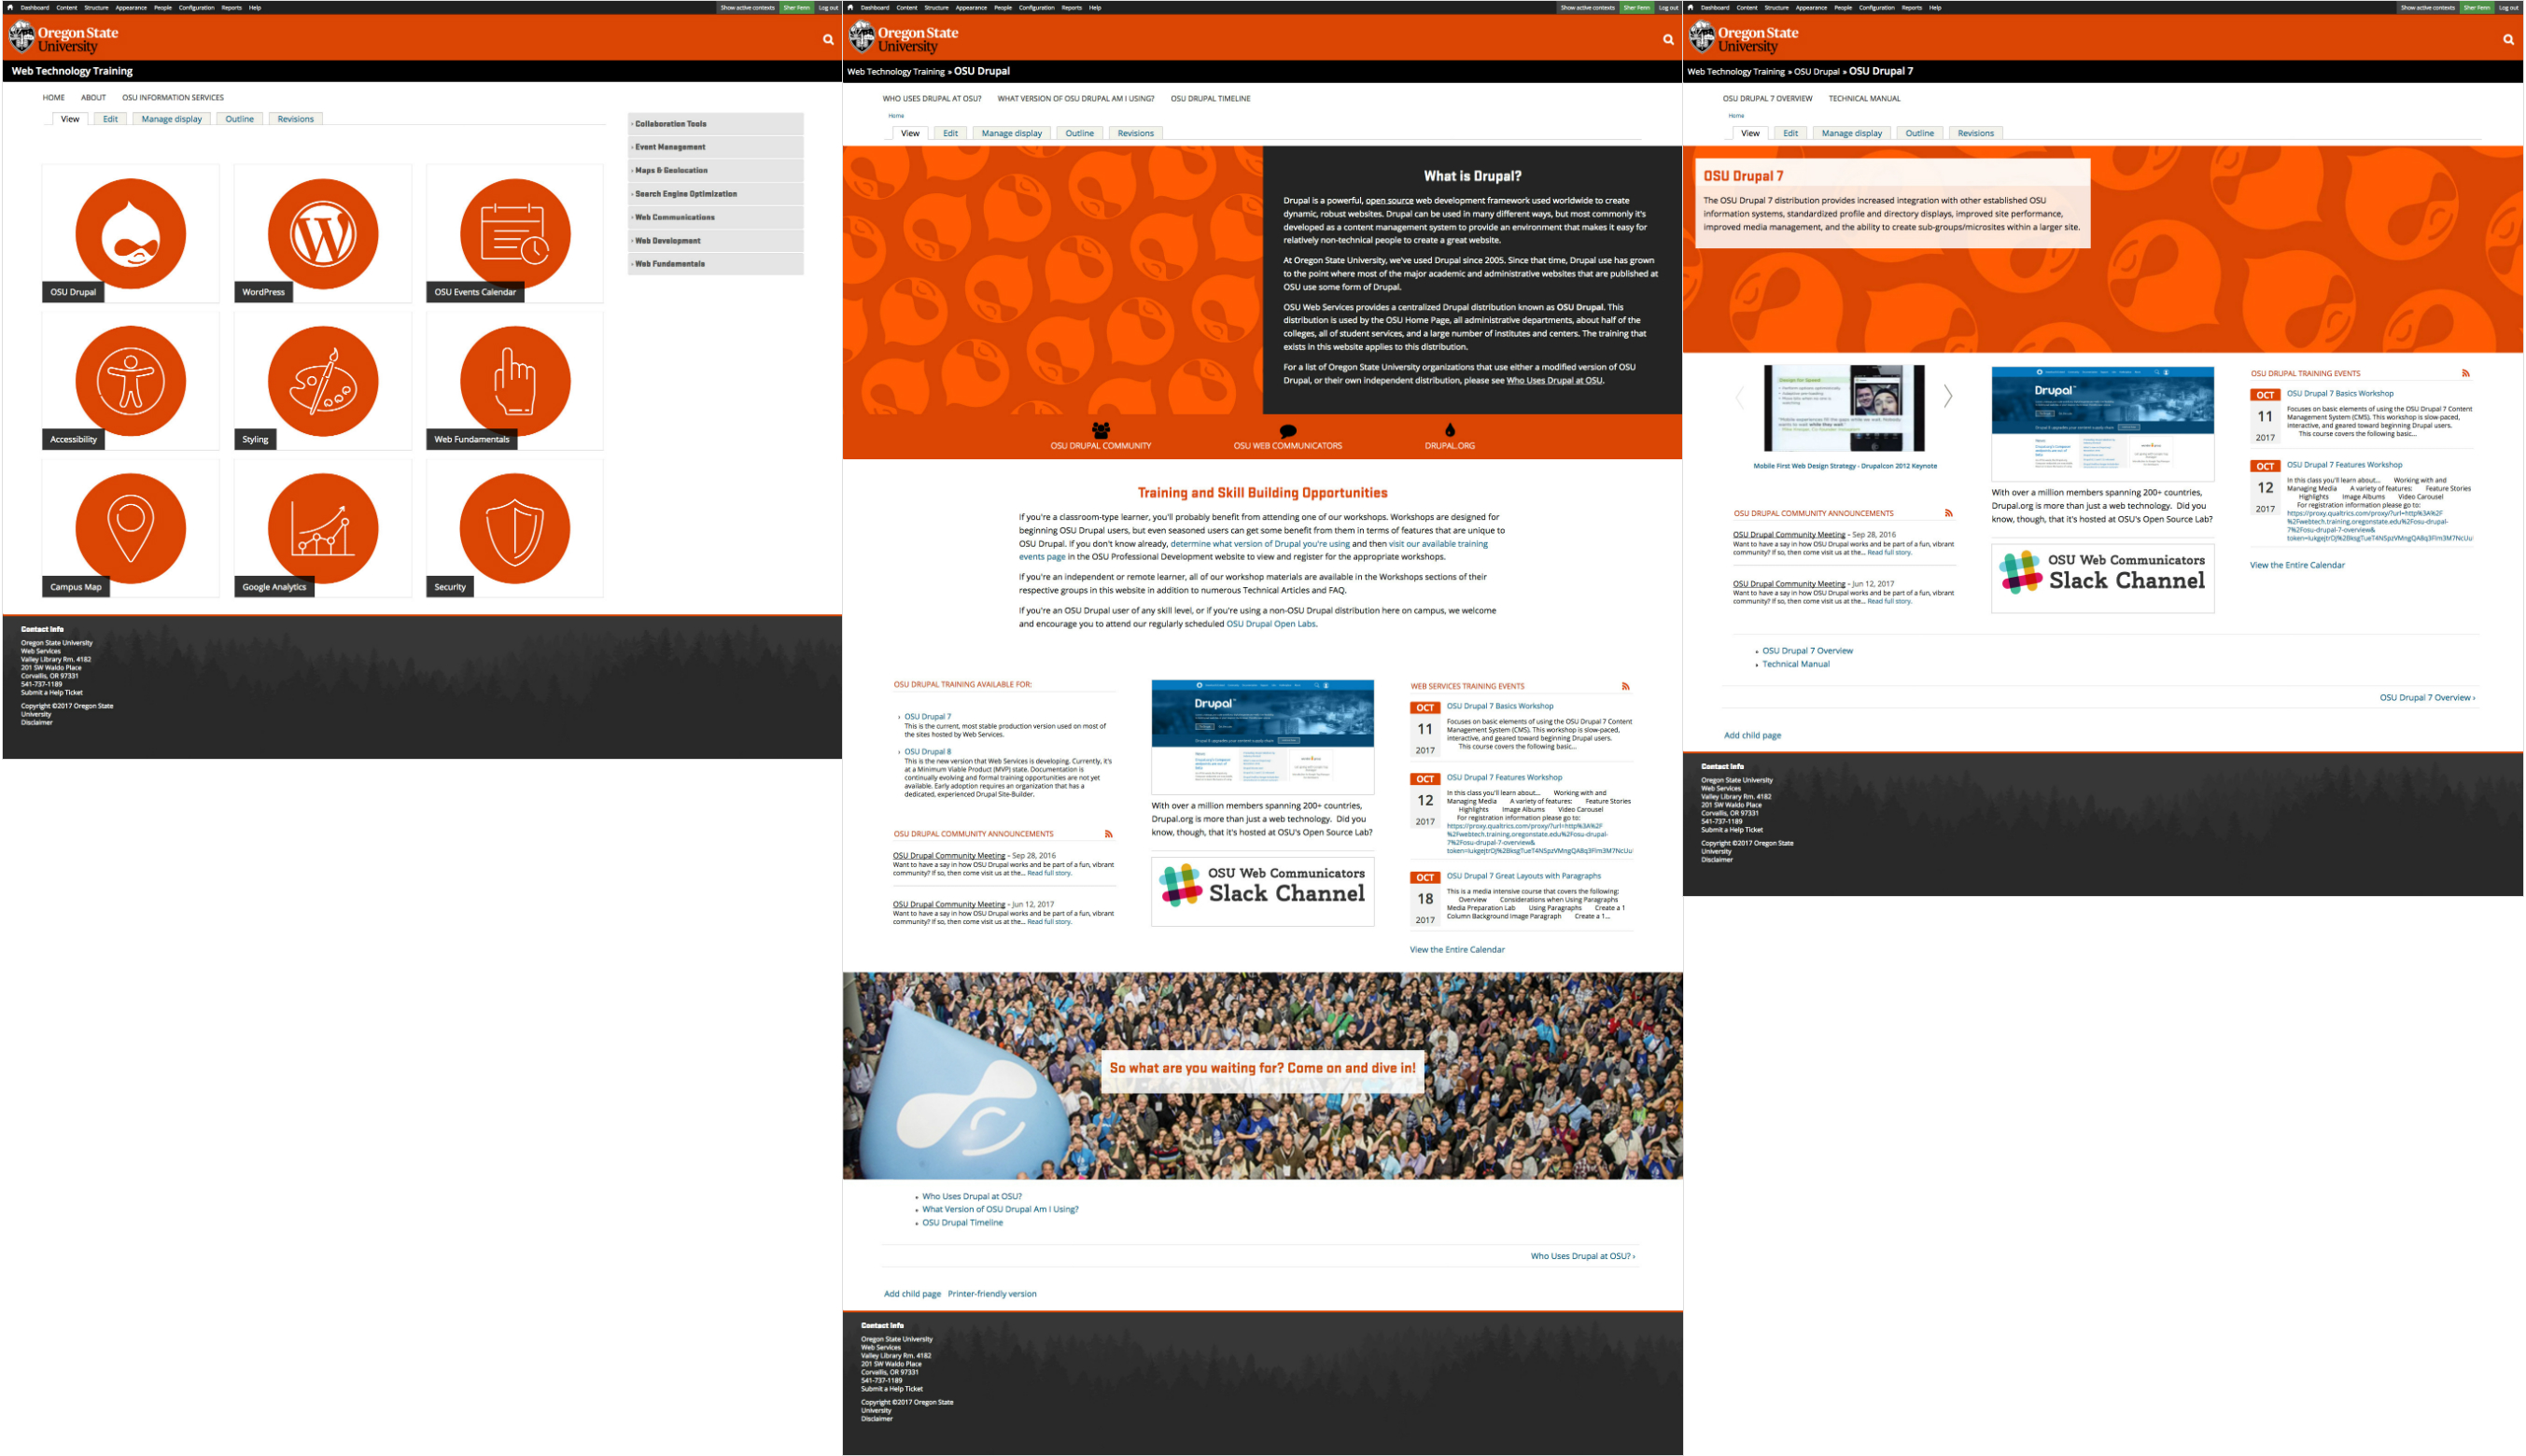 a side by side comparision of the home page, a group parent page, and a group child page